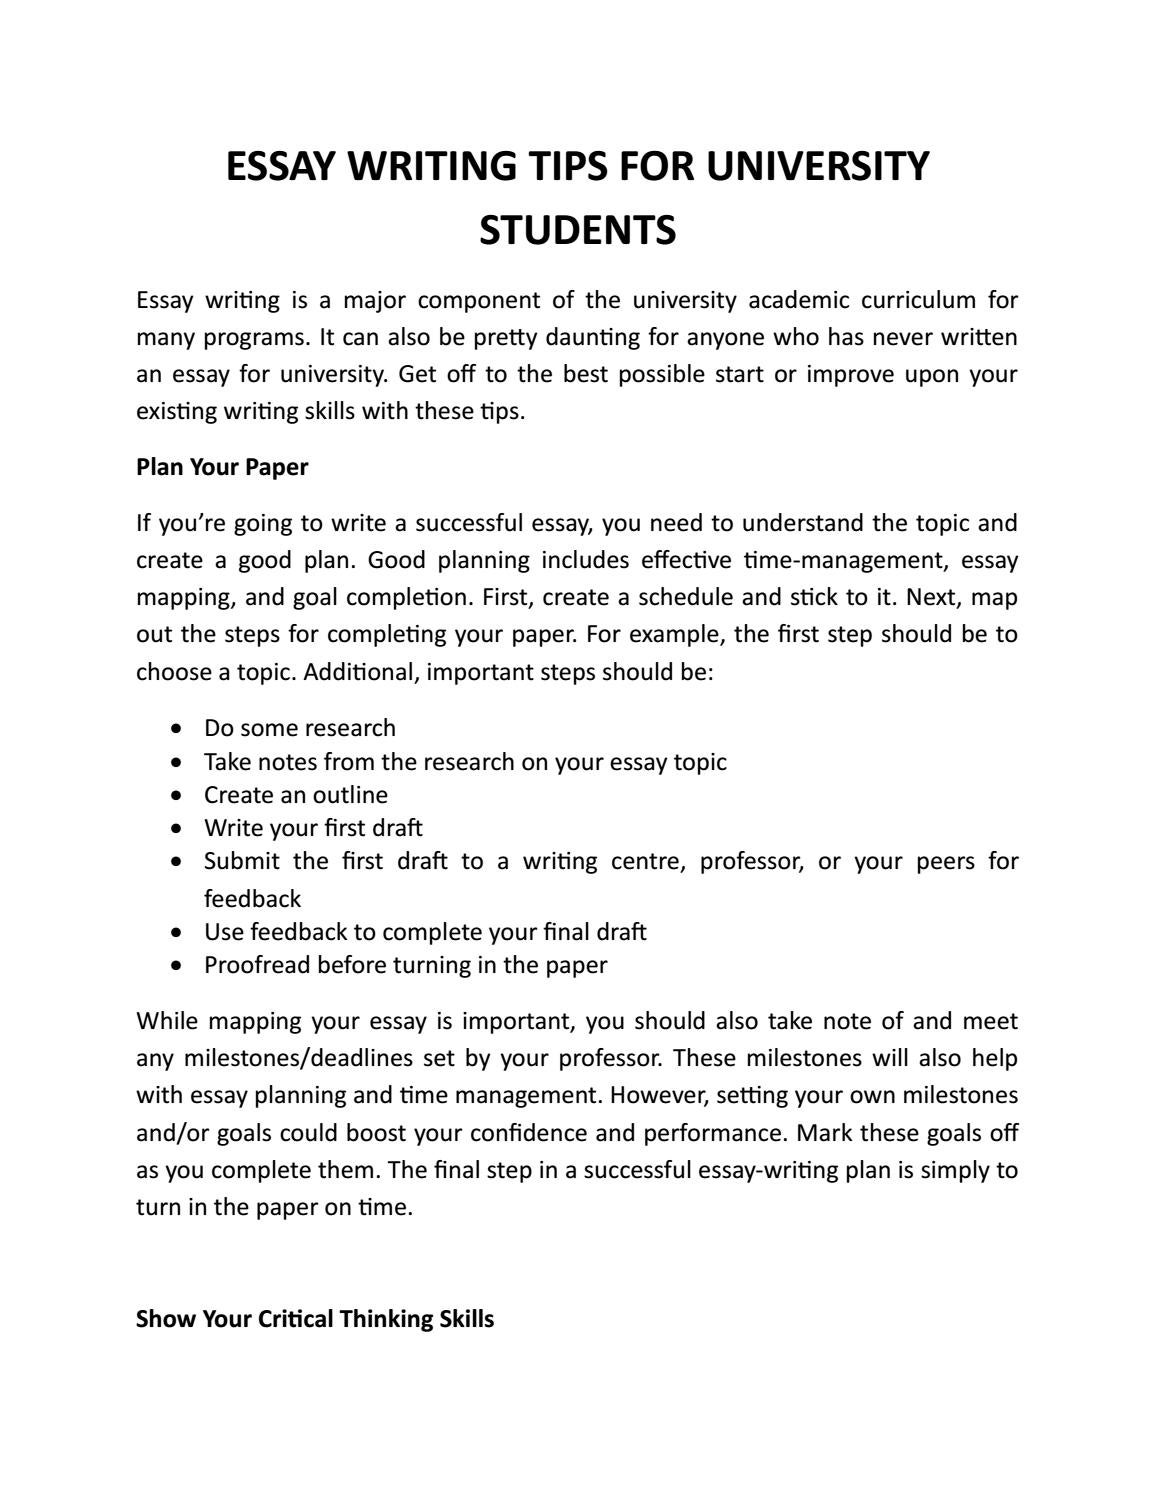 Write Essays For College Students